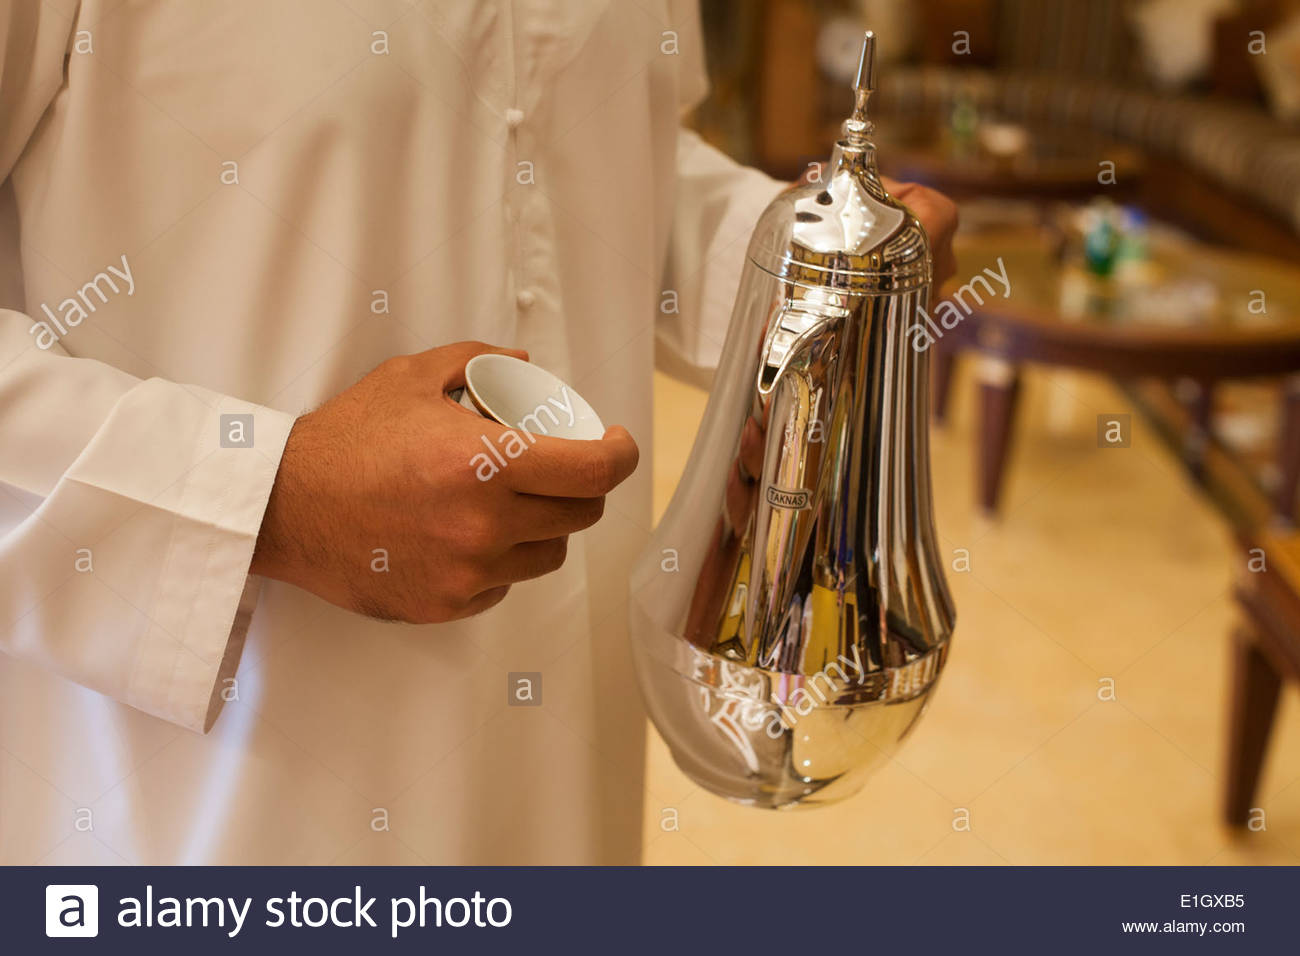 Arab holding a silver coffeepot - Stock Image